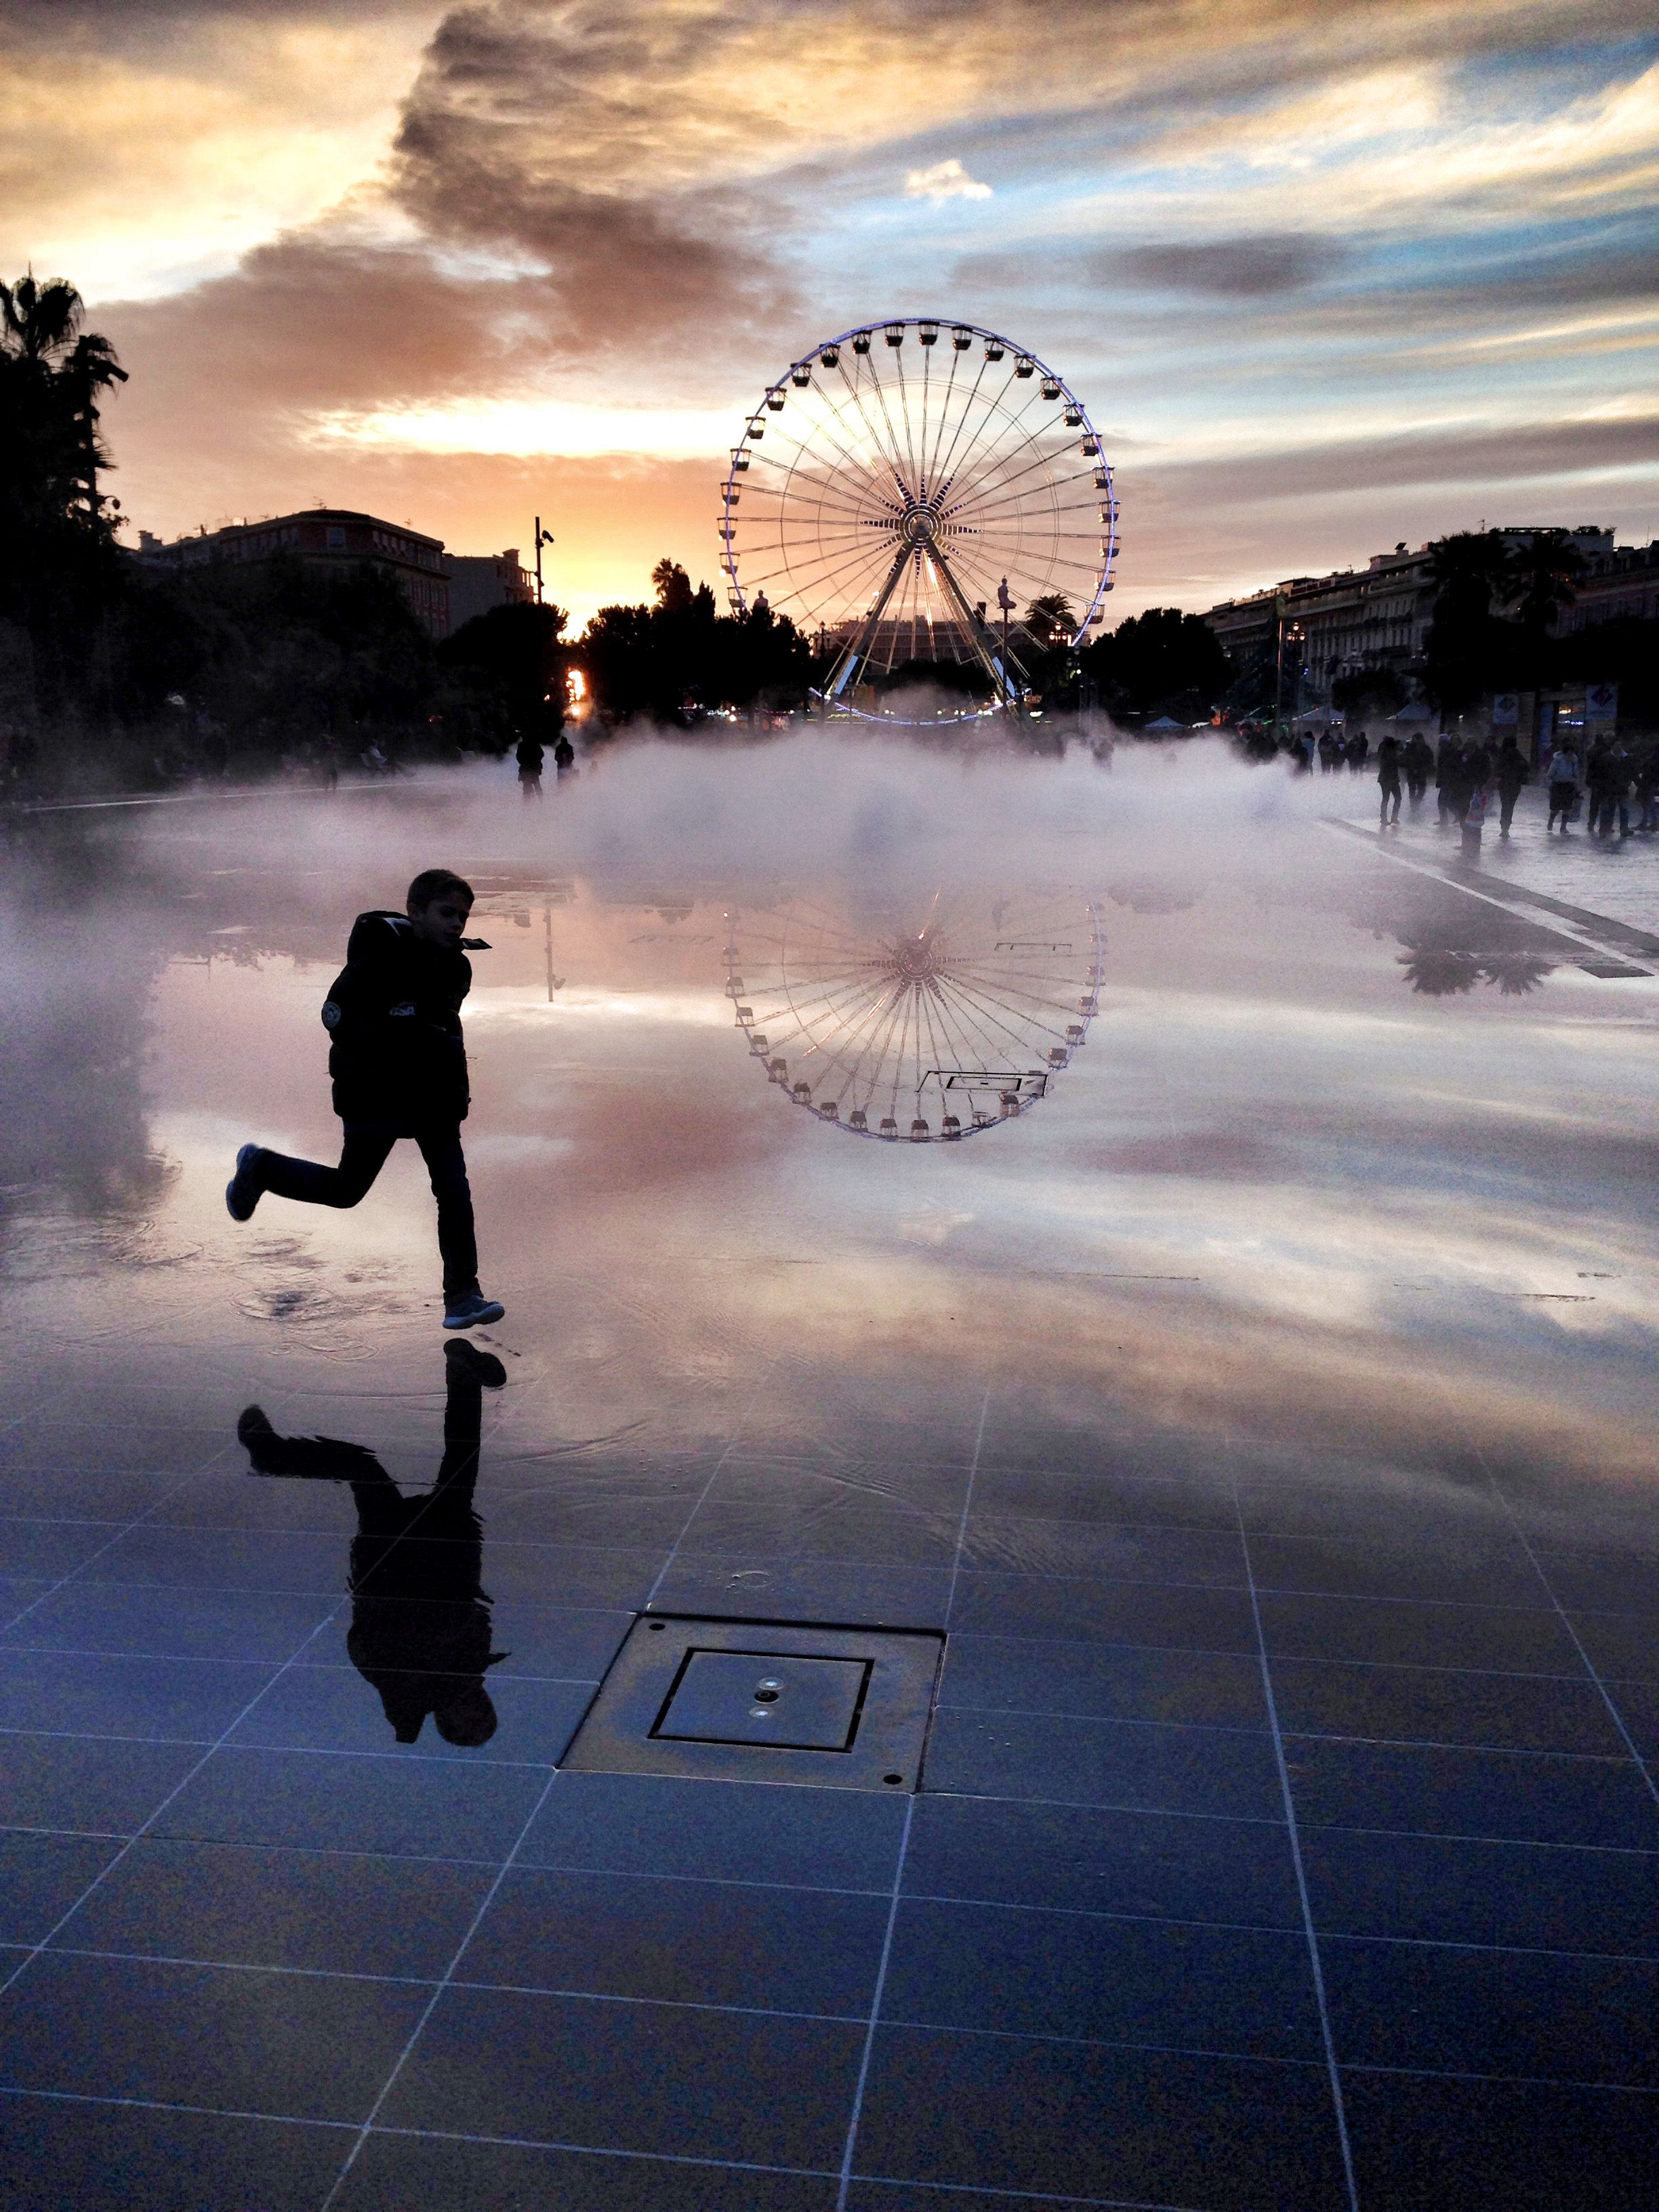 A child runs in front of Ferris wheel on...A child runs in front of Ferris wheel on December 16, 2014 in downtown Nice, southeastern France. AFP PHOTO / VALERY HACHEVALERY HACHE/AFP/Getty Images